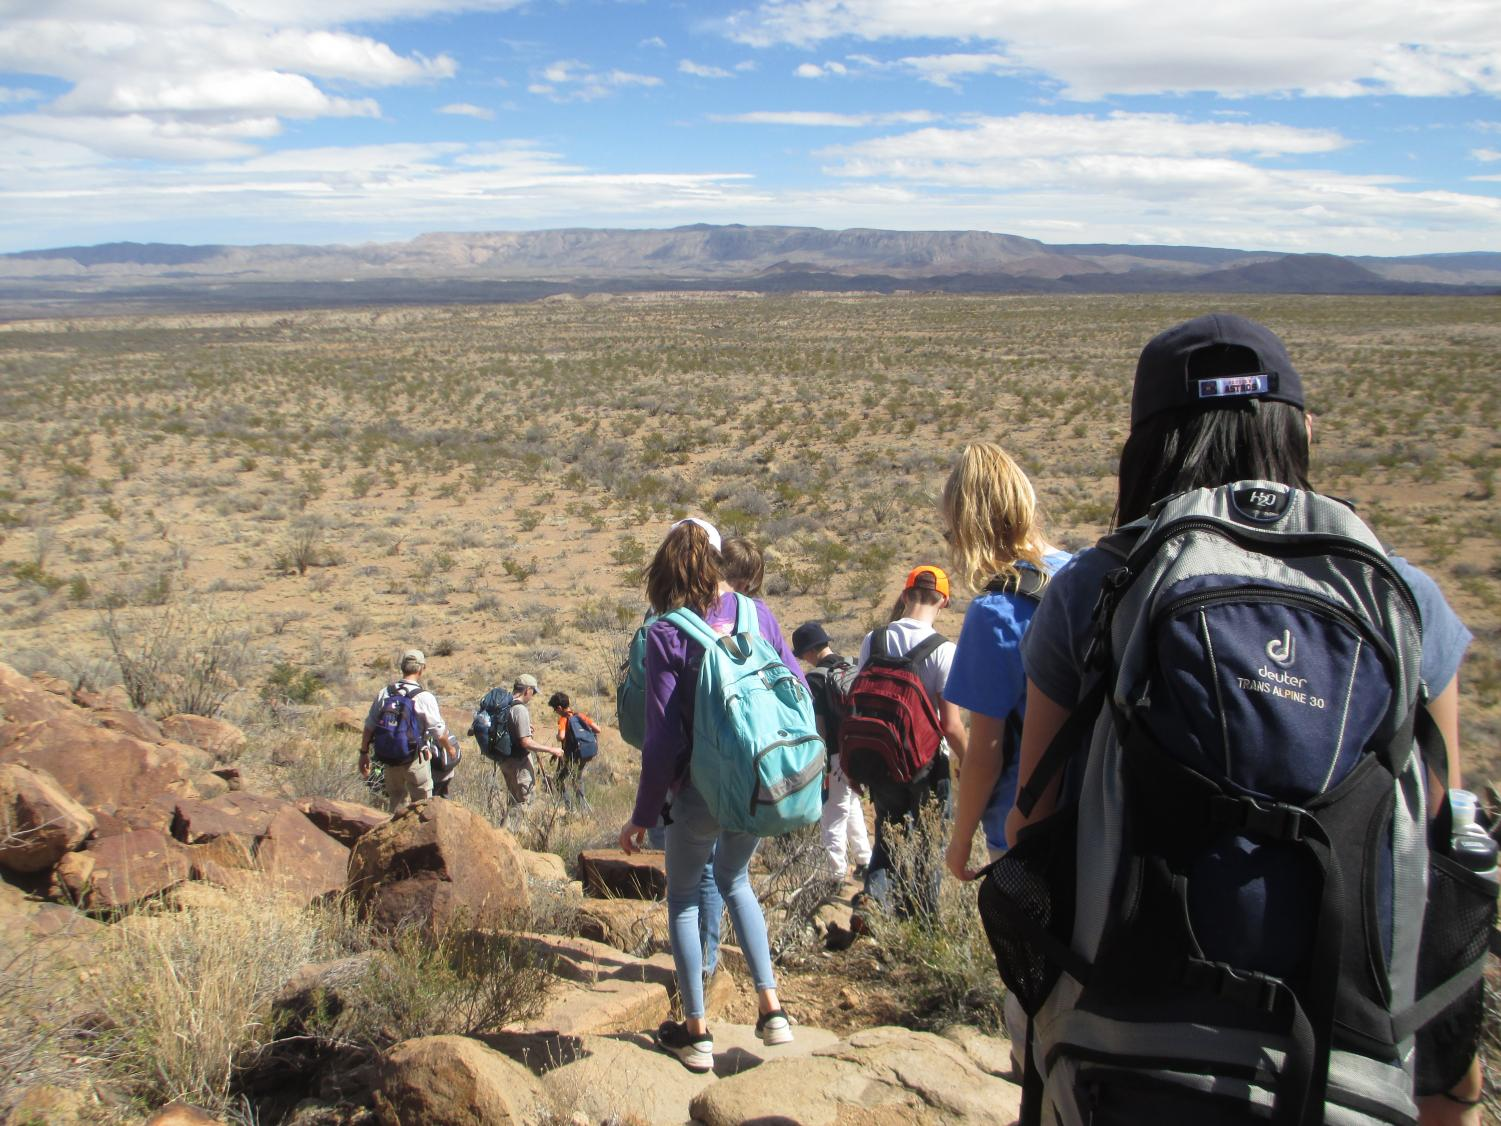 Due to the government shutdown, which began on Dec. 22, there are currently no visitor services provided in Big Bend National Park, which would impede the annual eighth grade retreat. Above, last year's eighth graders navigate down a trail in the park.